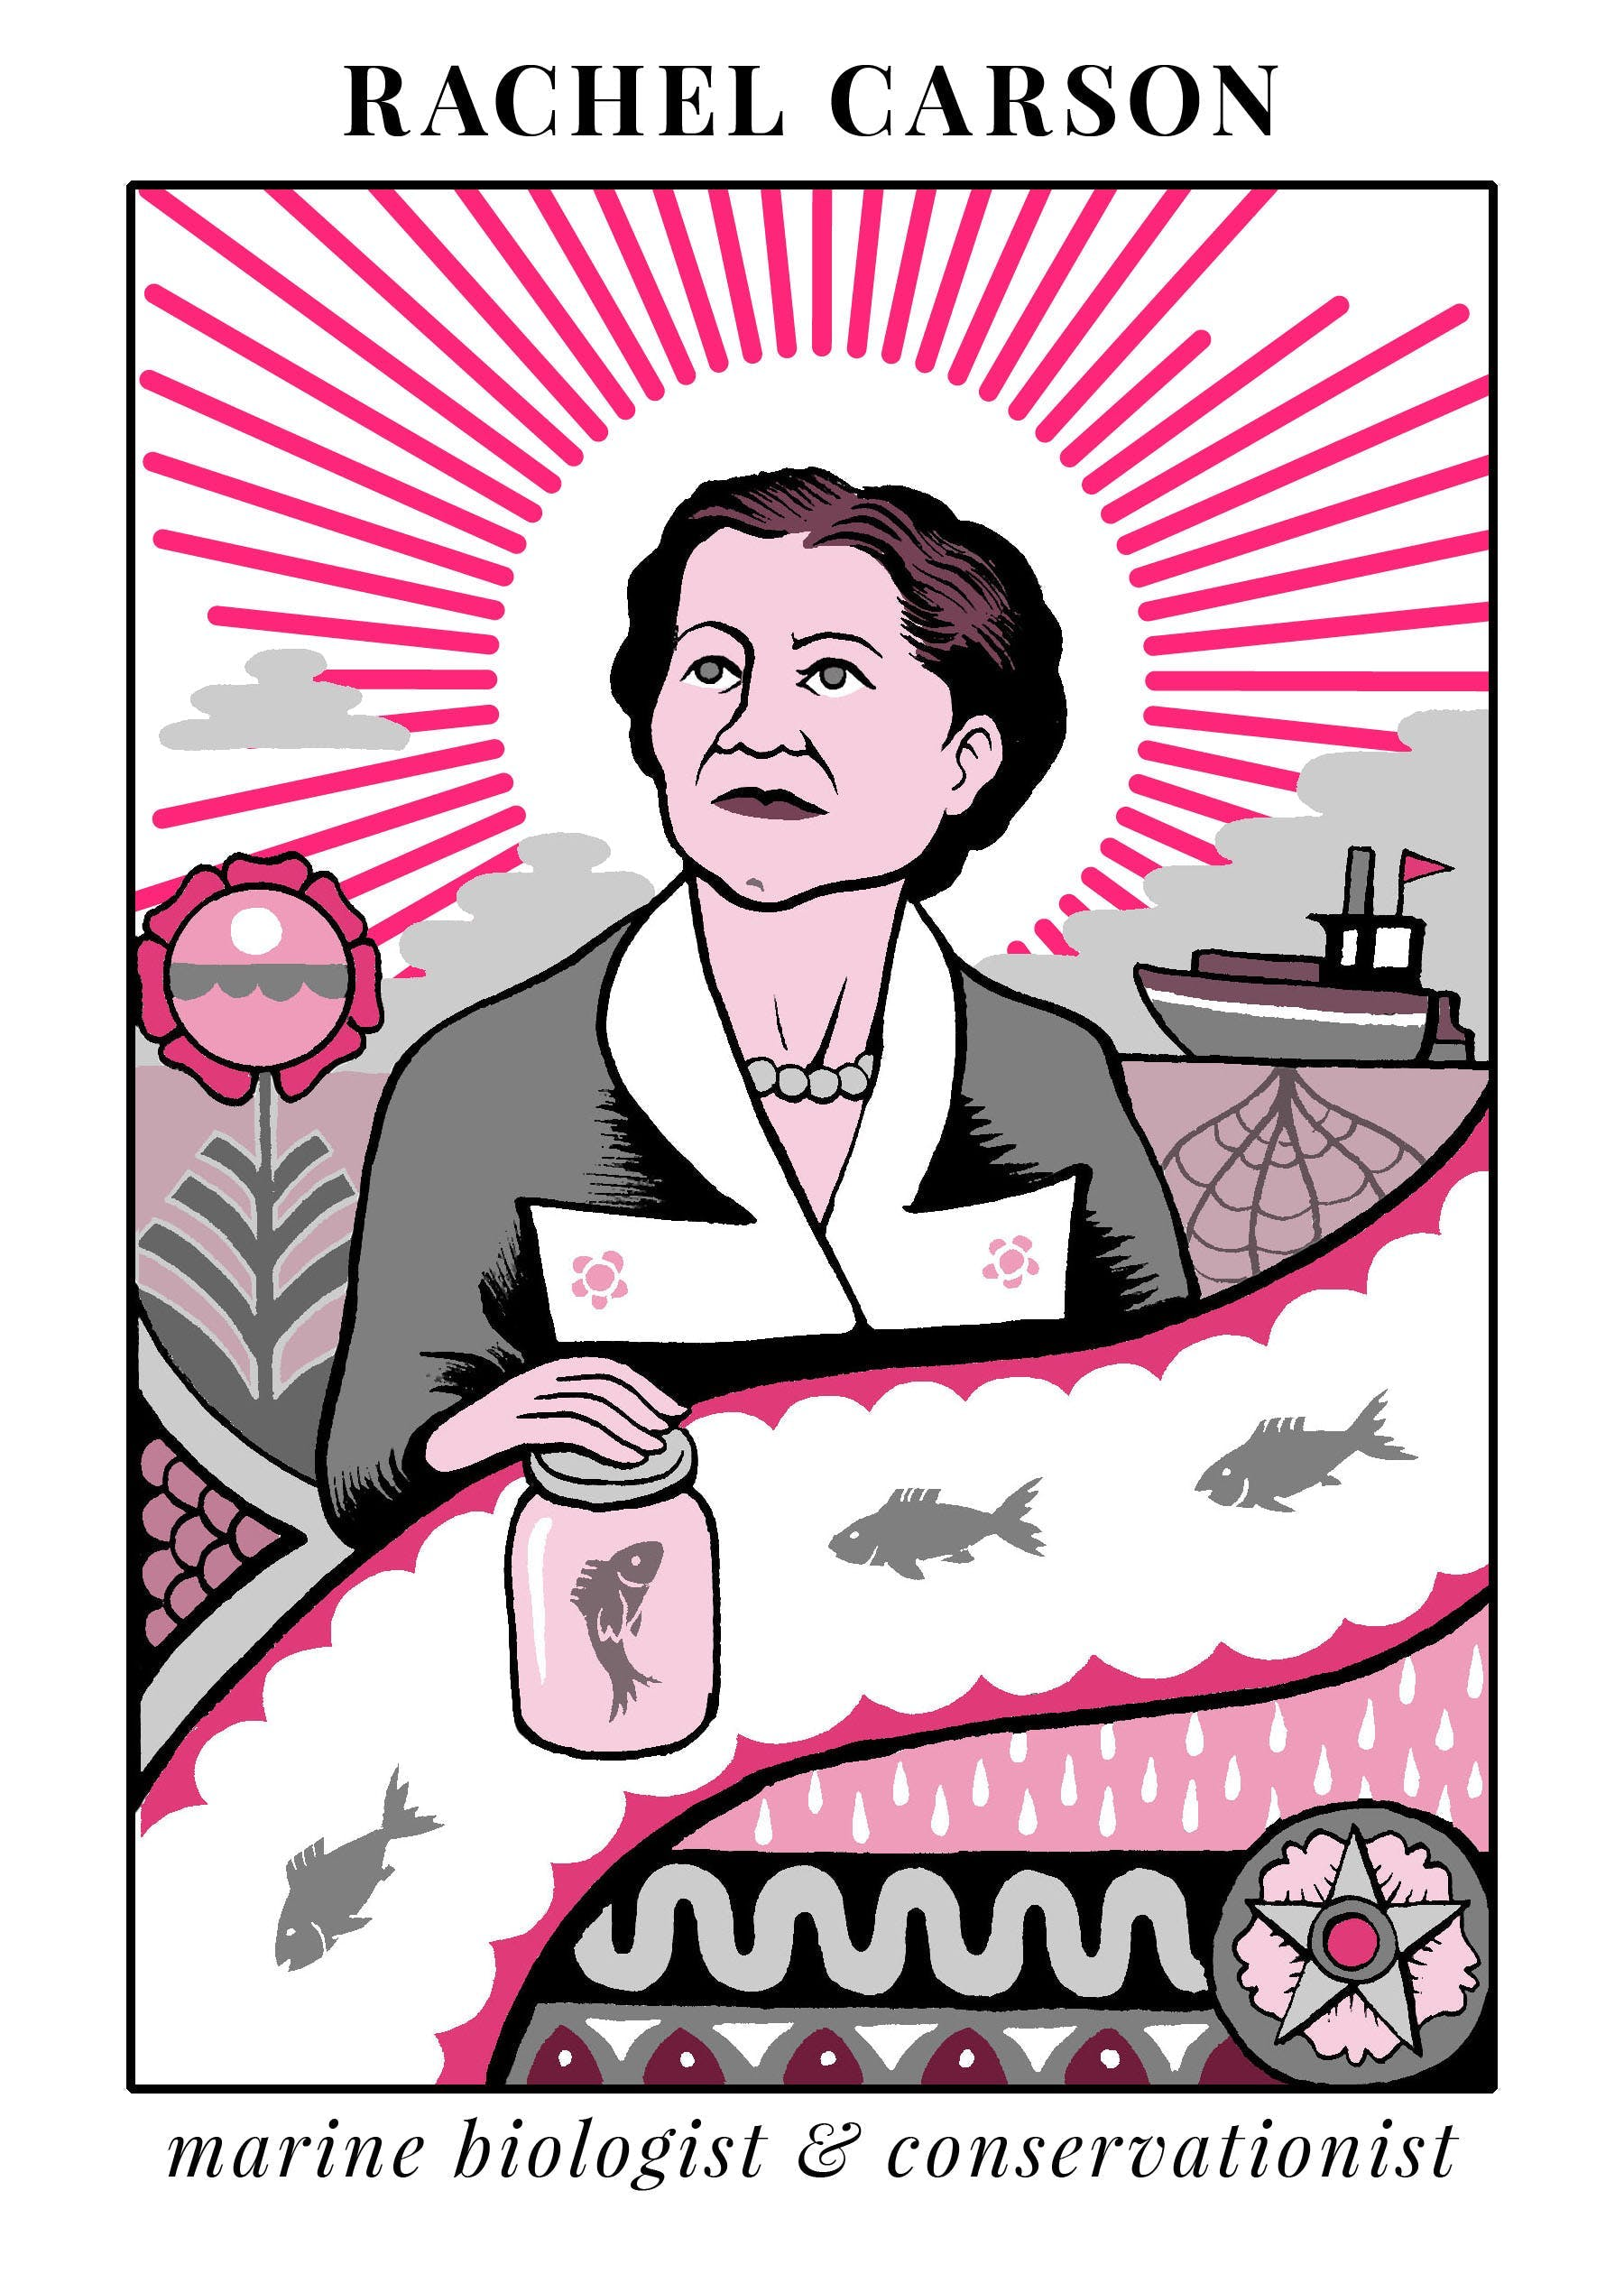 A painting of Rachel Carson, marine biologist and environmentalist who wrote Silent Spring.